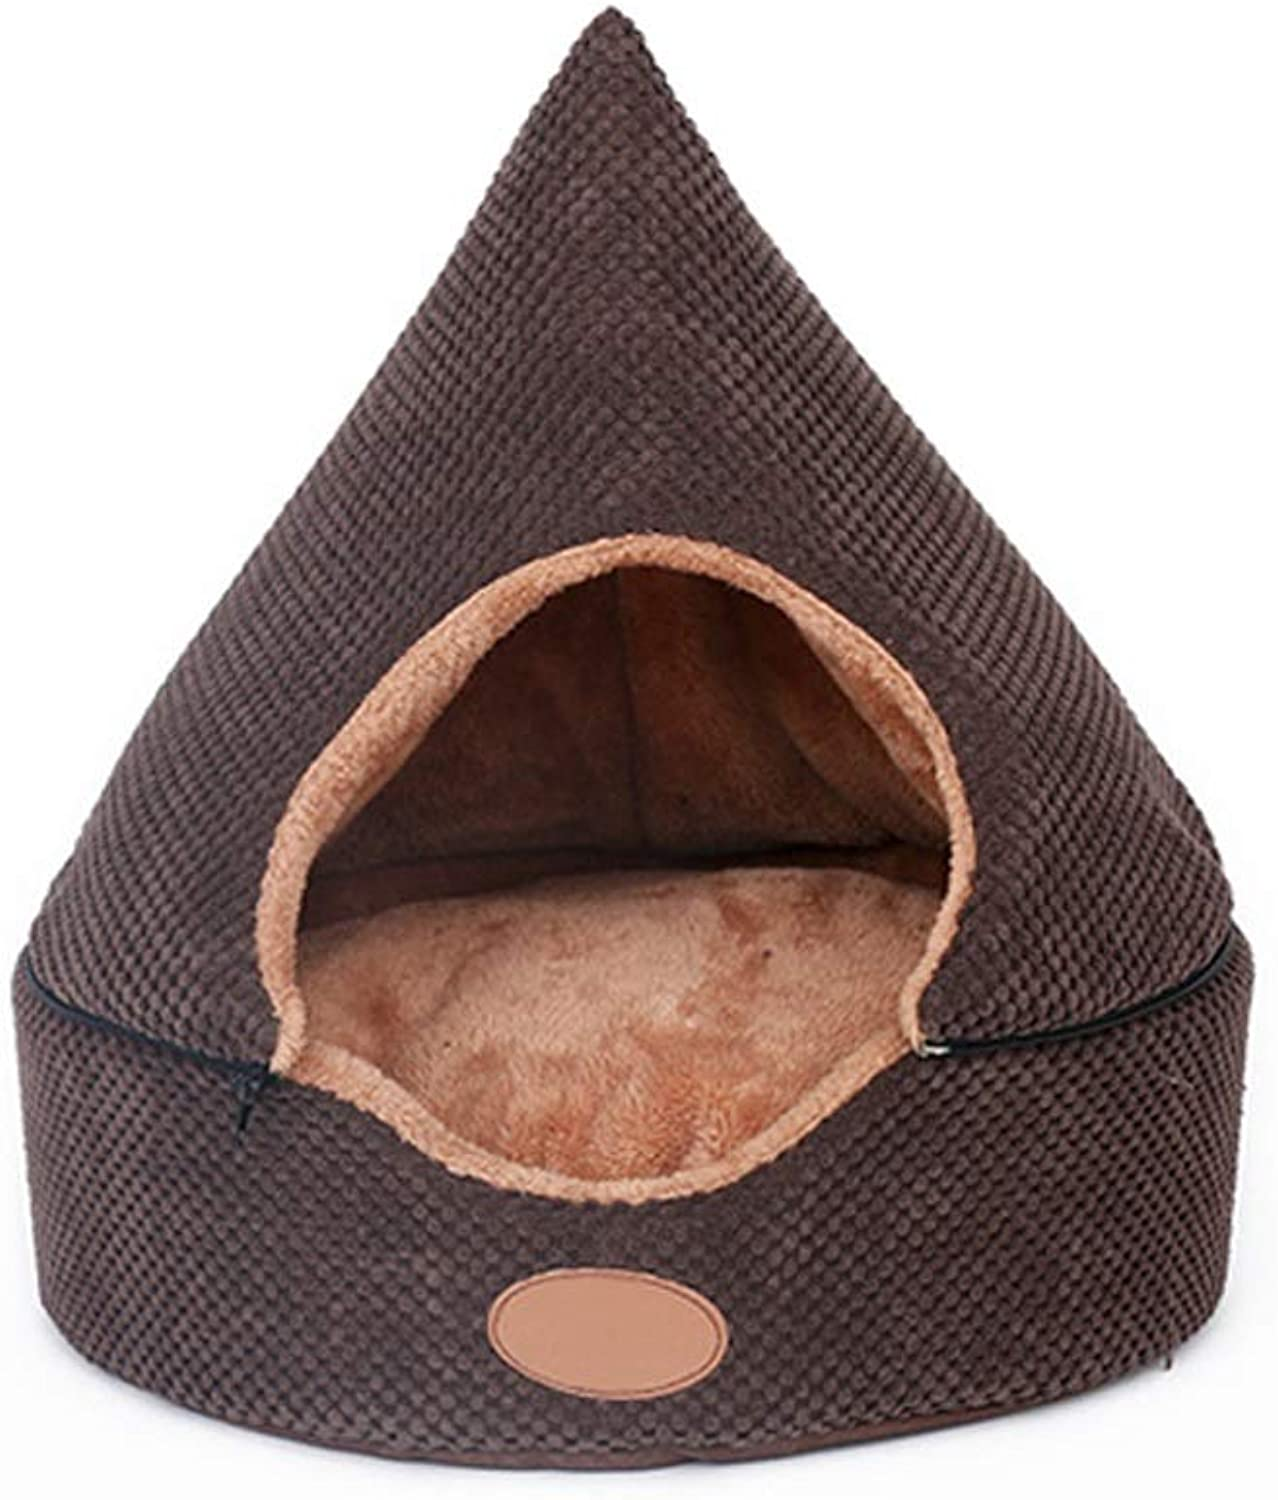 Pet Supplies. Pet Cave Tent Bed for Dogs and Cats,Portable Indoor Pet House Cat Hideout,3 Sizes (Size   L)